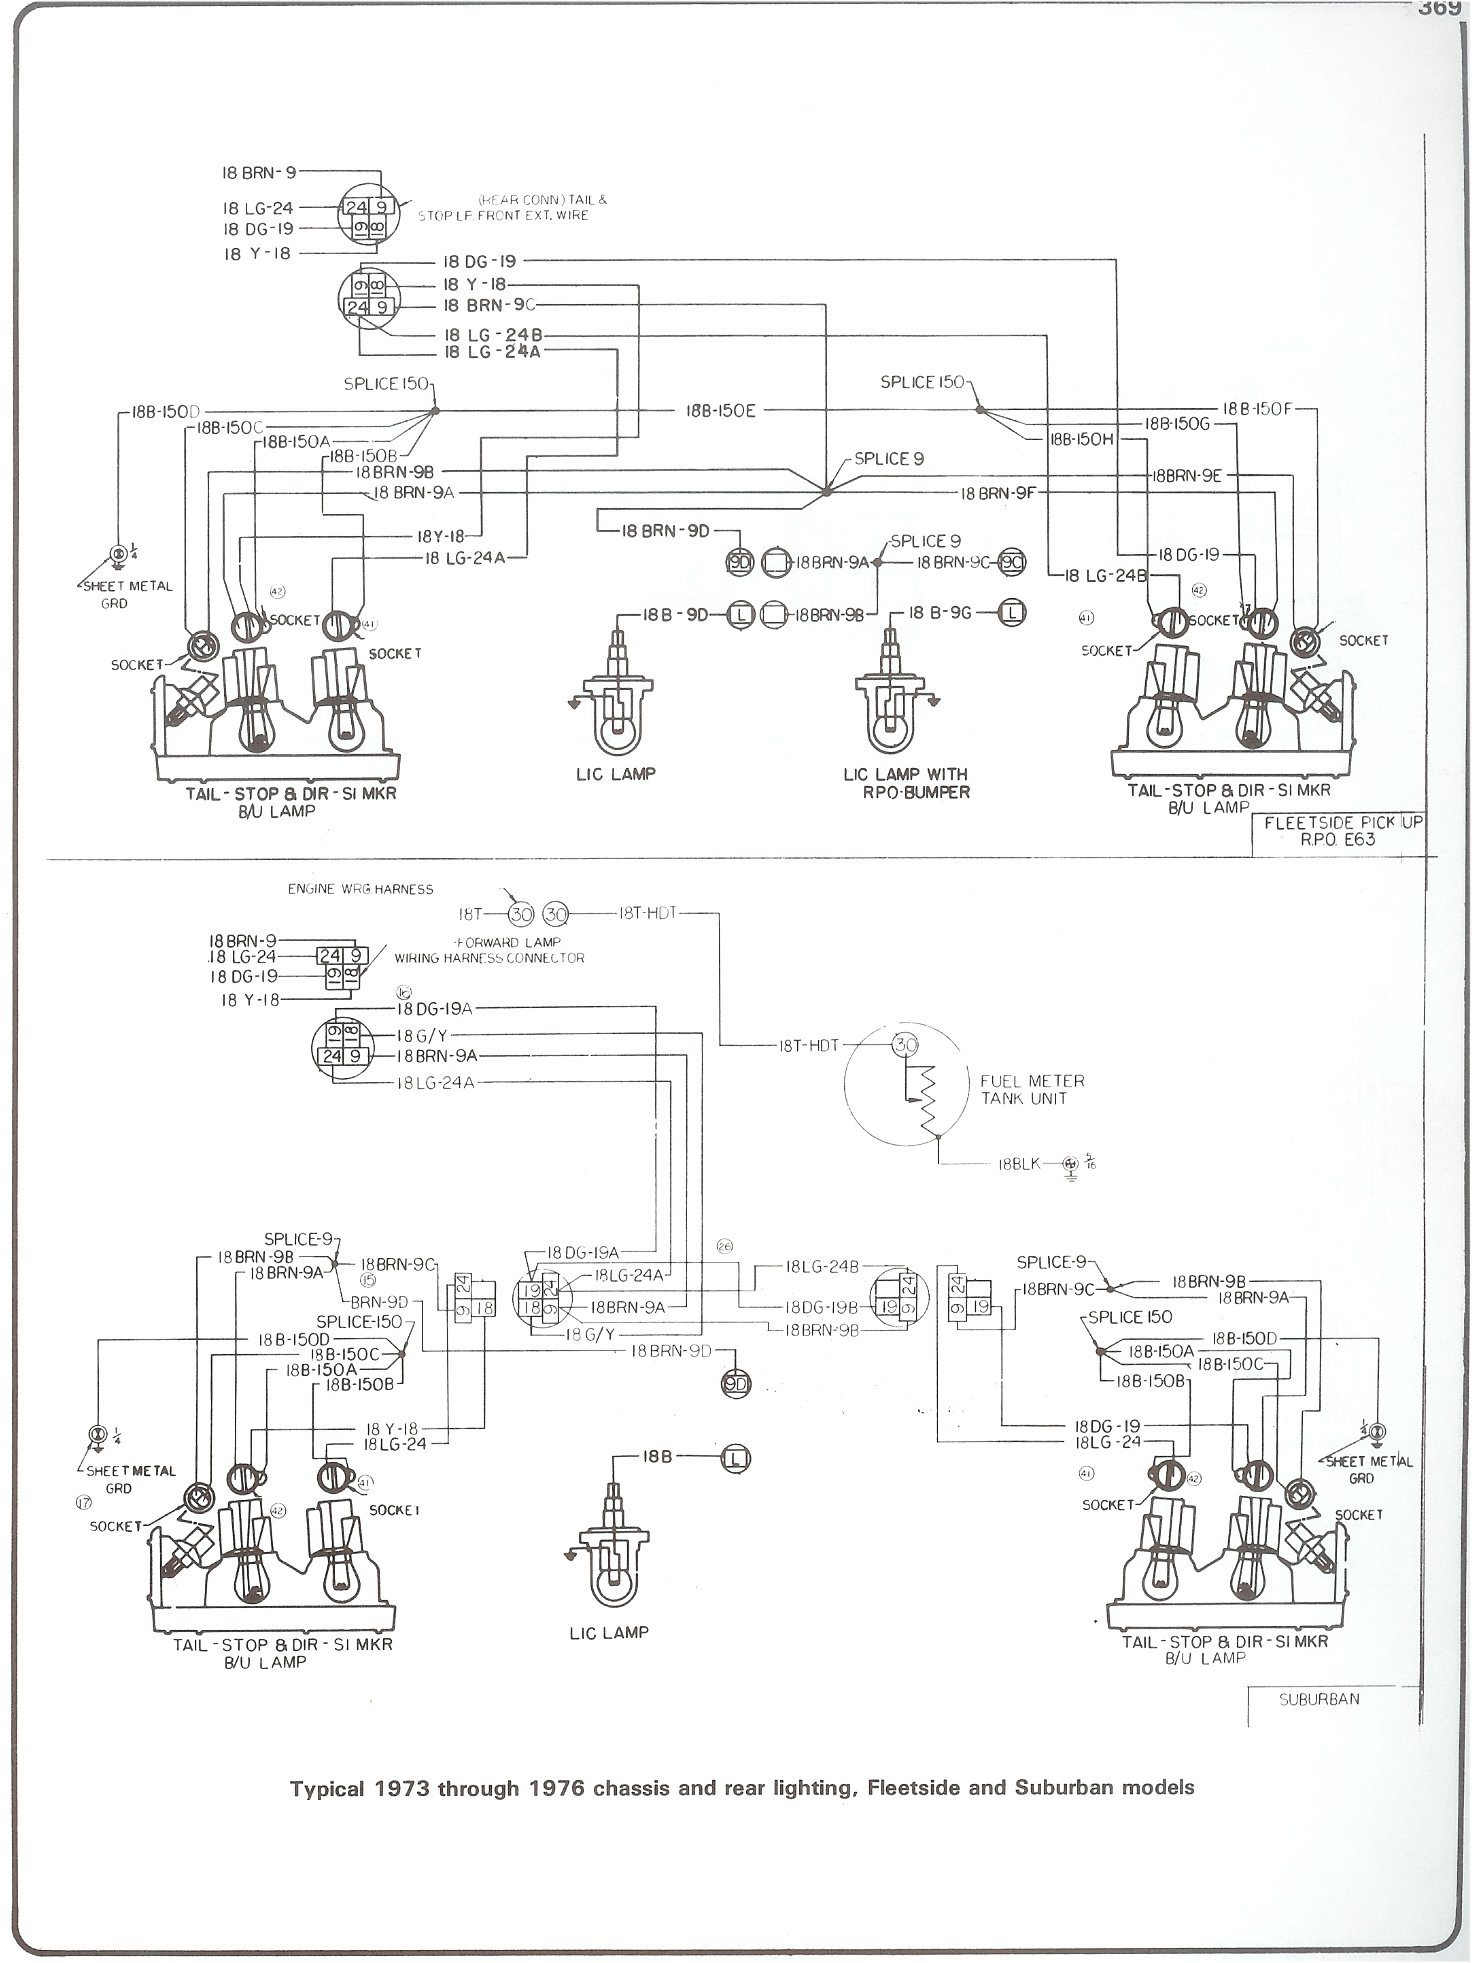 Chevy Truck Wiring Harness Diagram from www.73-87chevytrucks.com